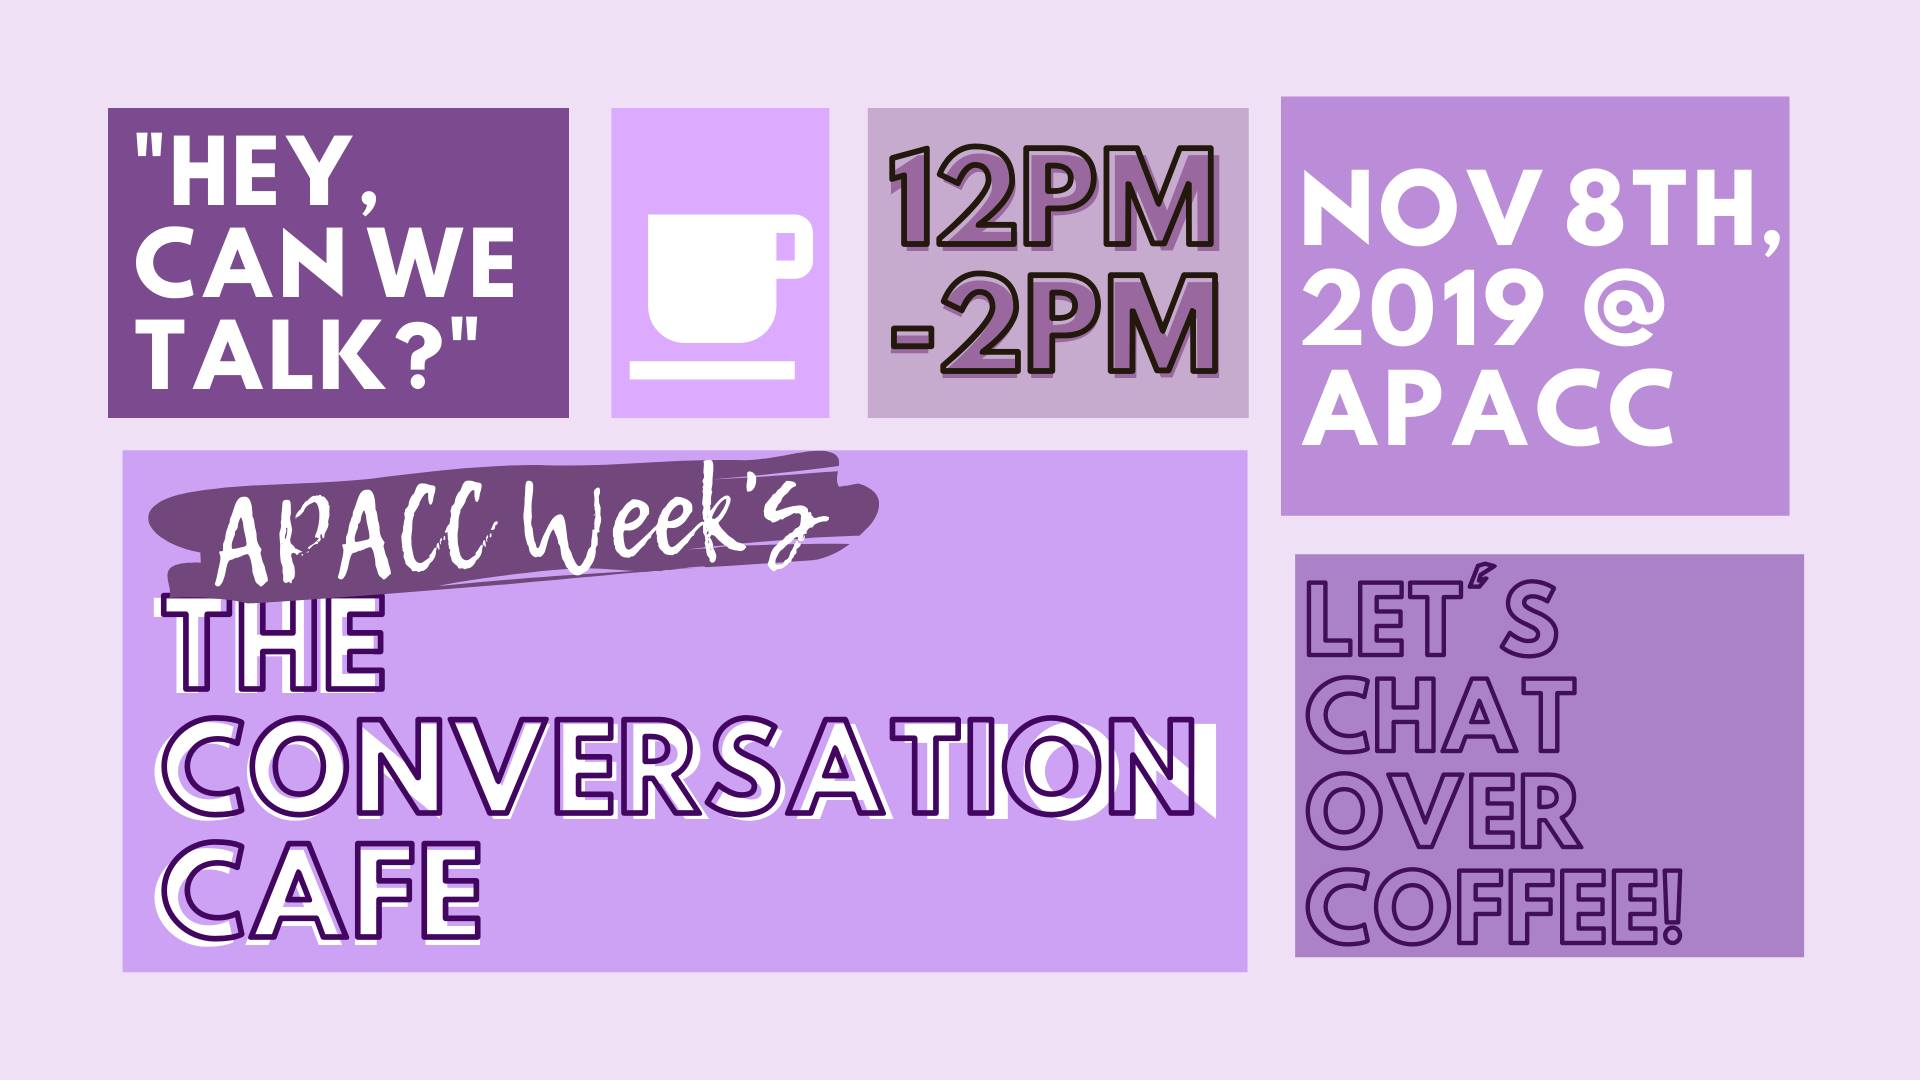 Flier that says The Conversation Cafe November 8th at APACC